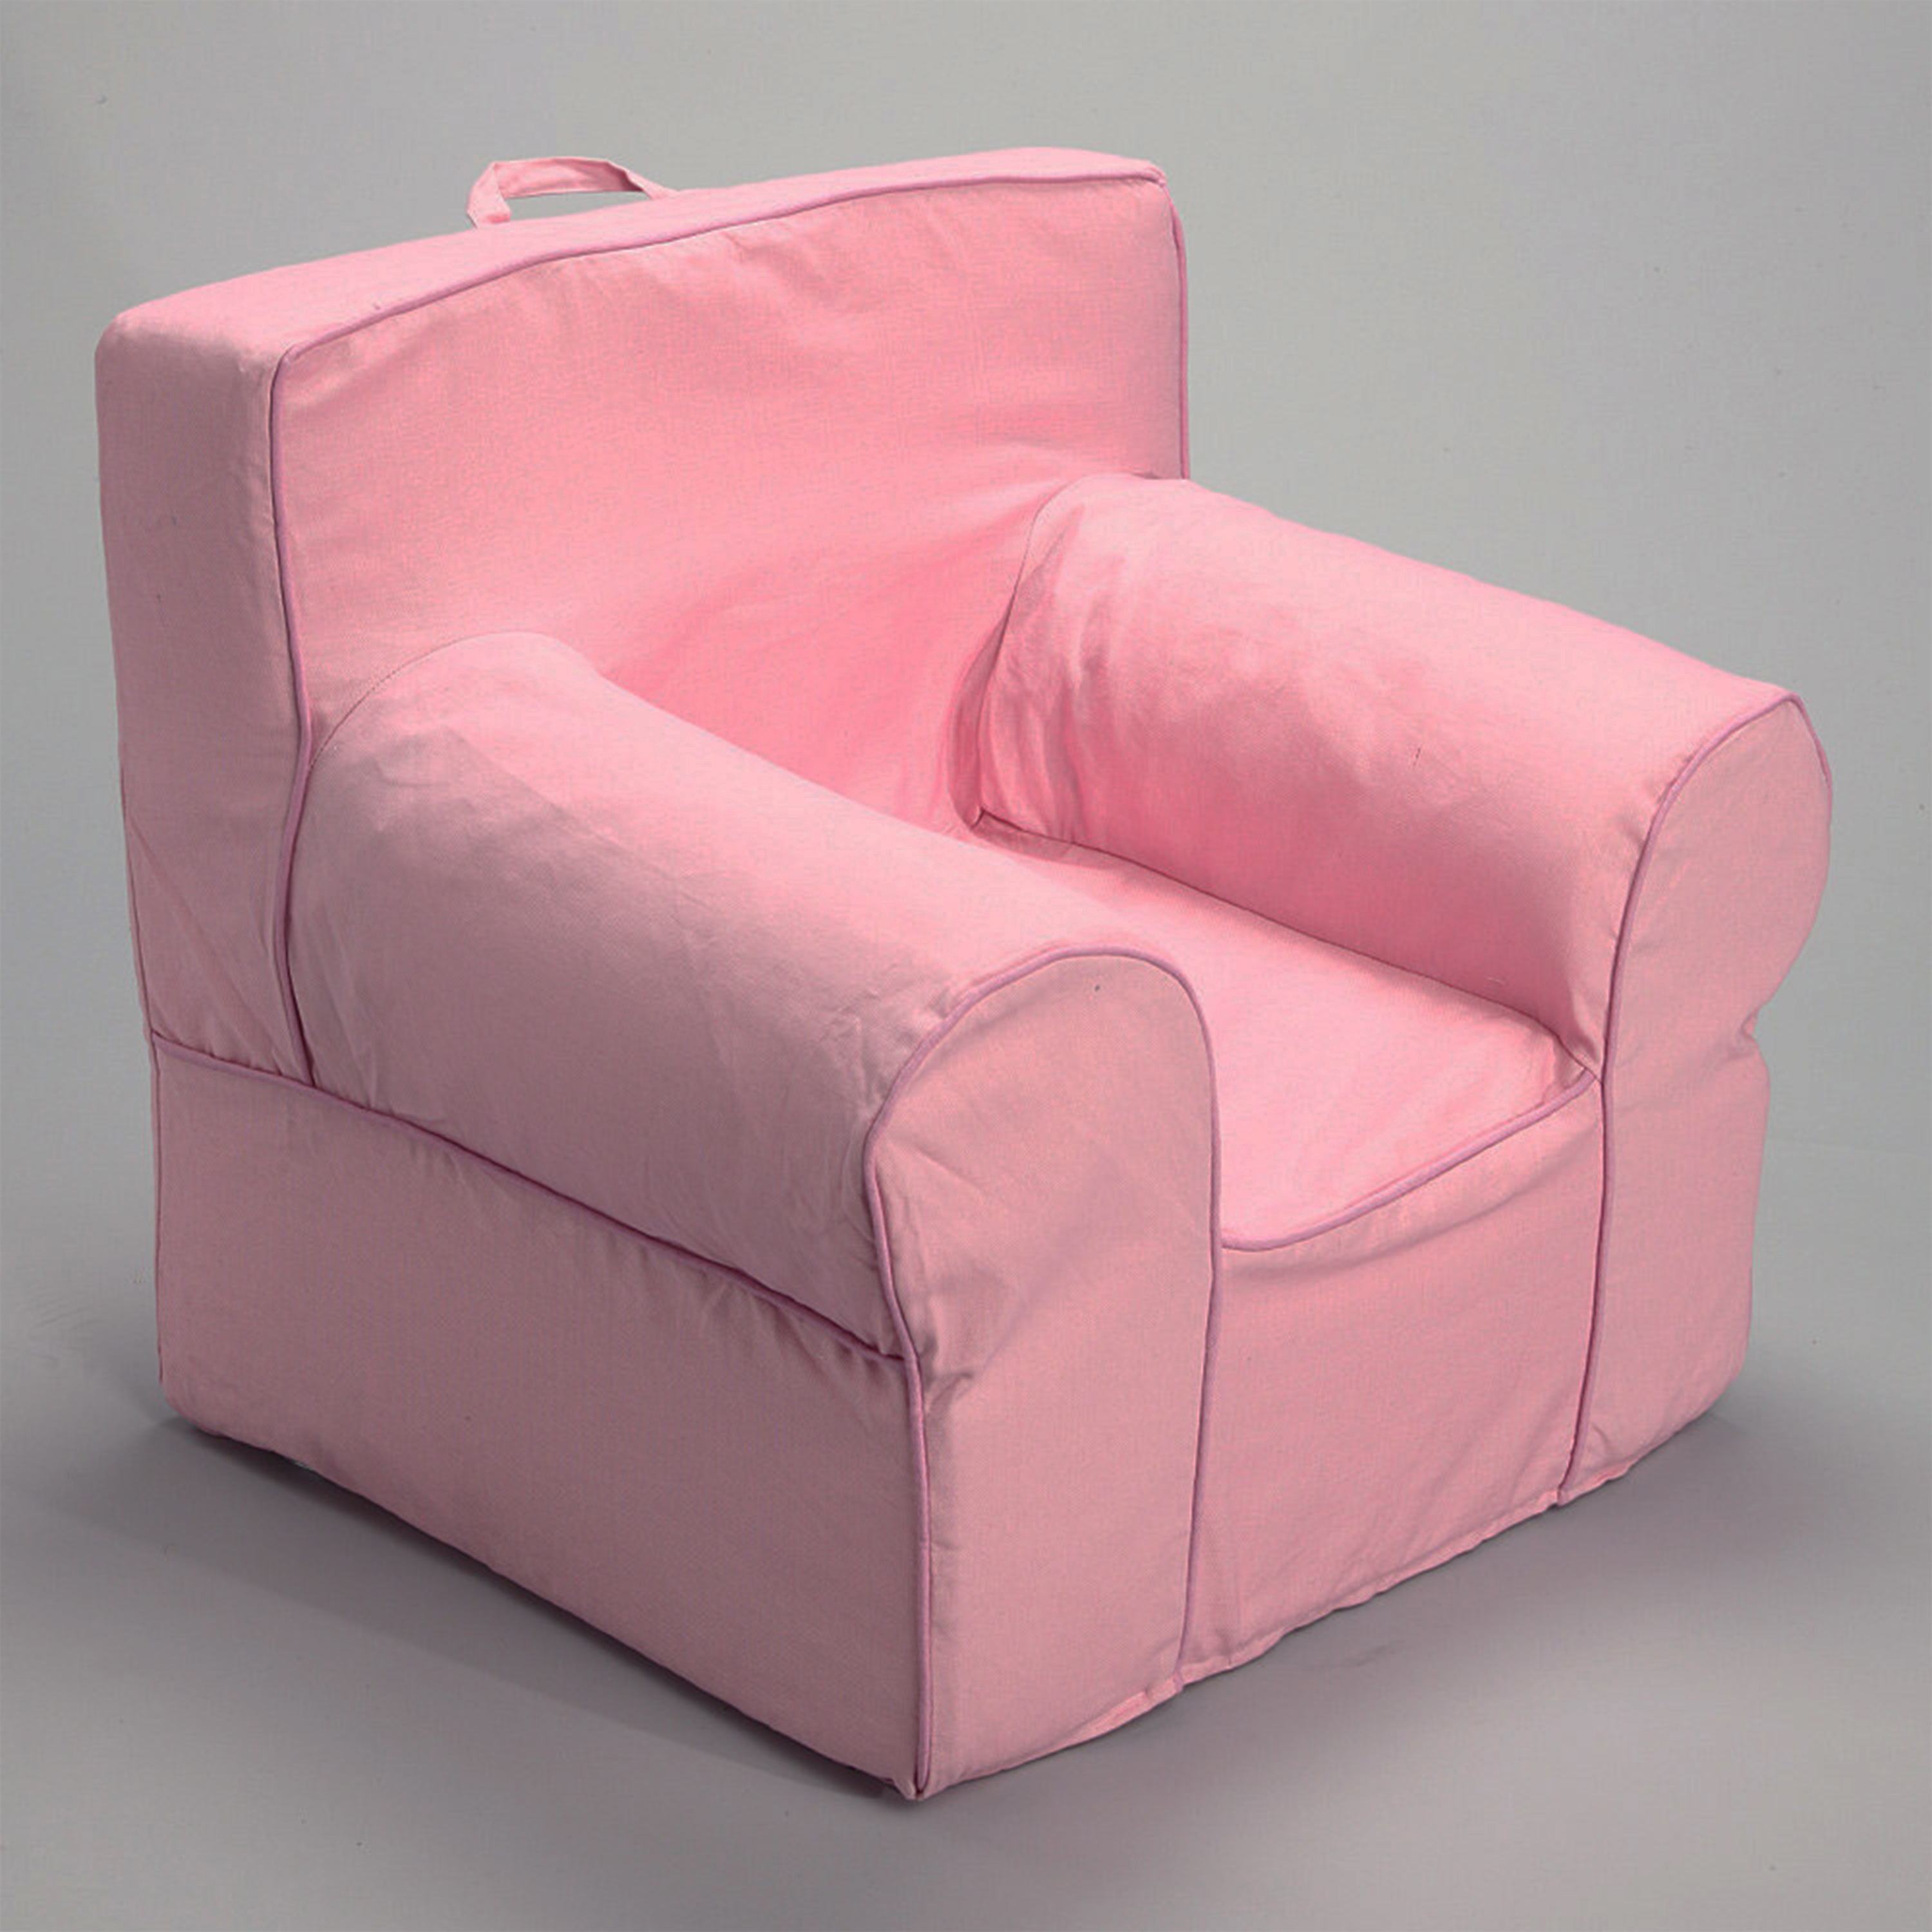 INSERT FOR POTTERY BARN ANYWHERE CHAIR INCLUDES PINK COVER SIZE